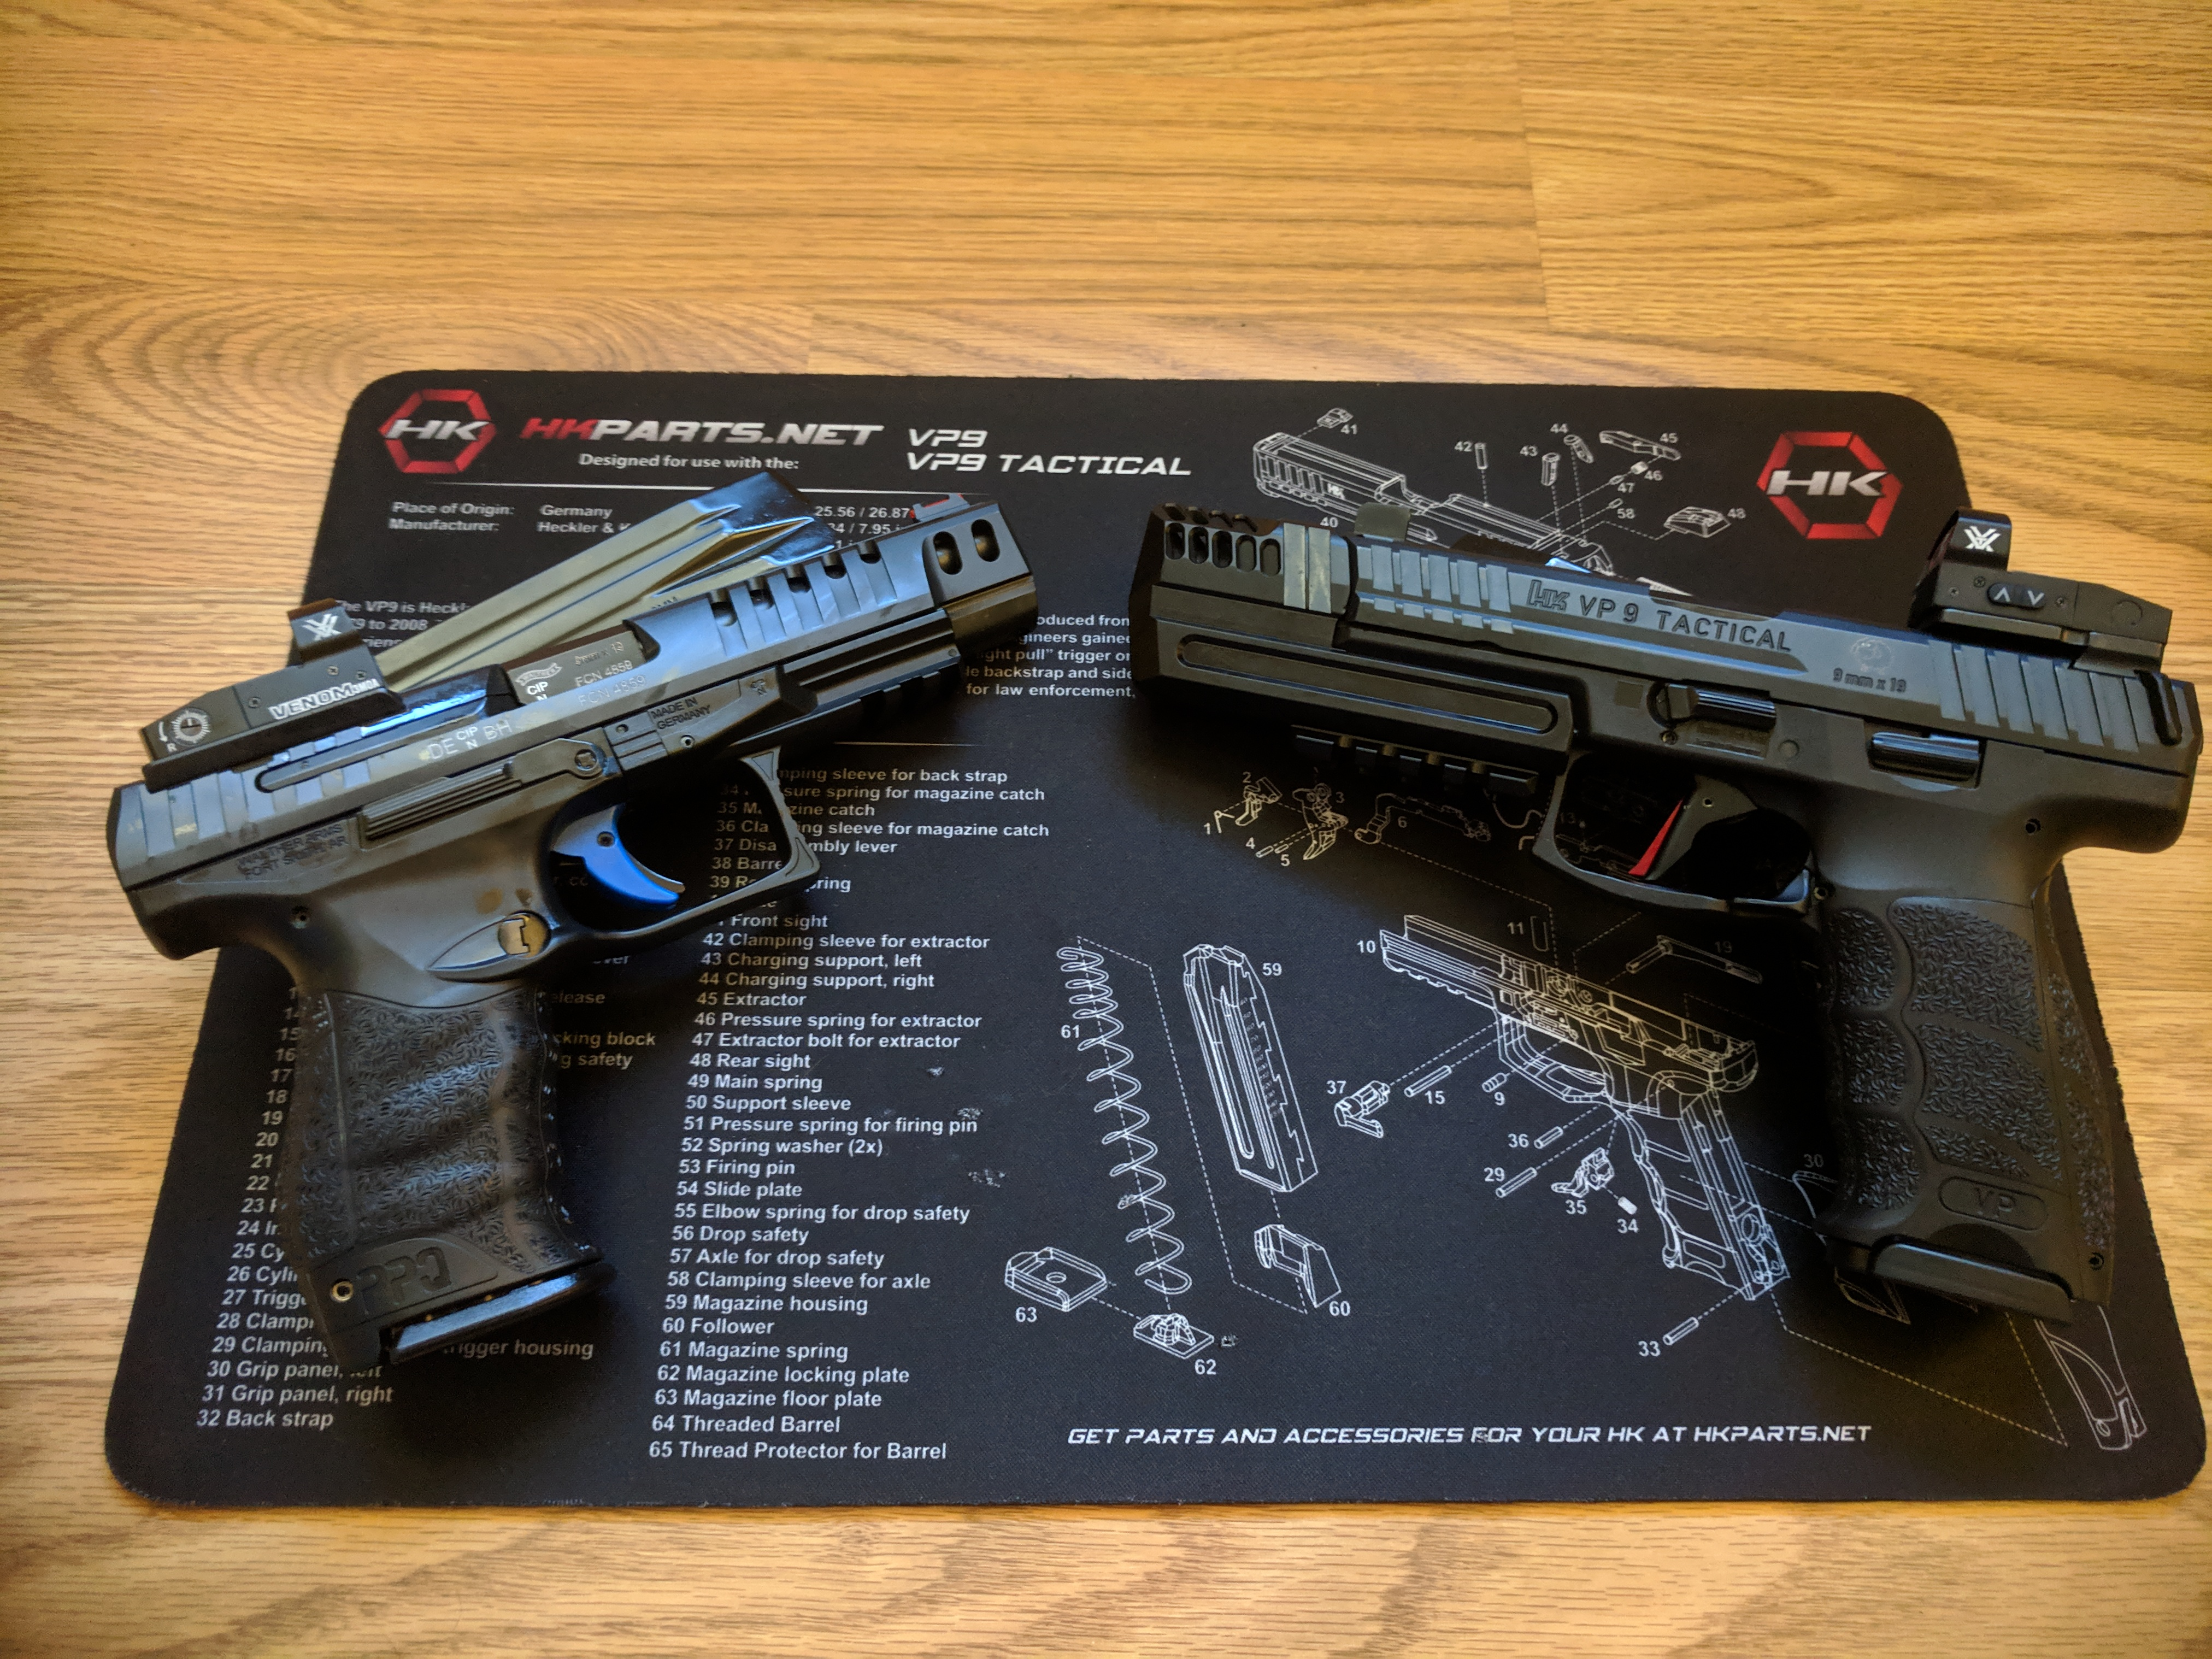 Finally done (I think) with the upgrades on my VP9 Tactical-q5_vp9.jpg